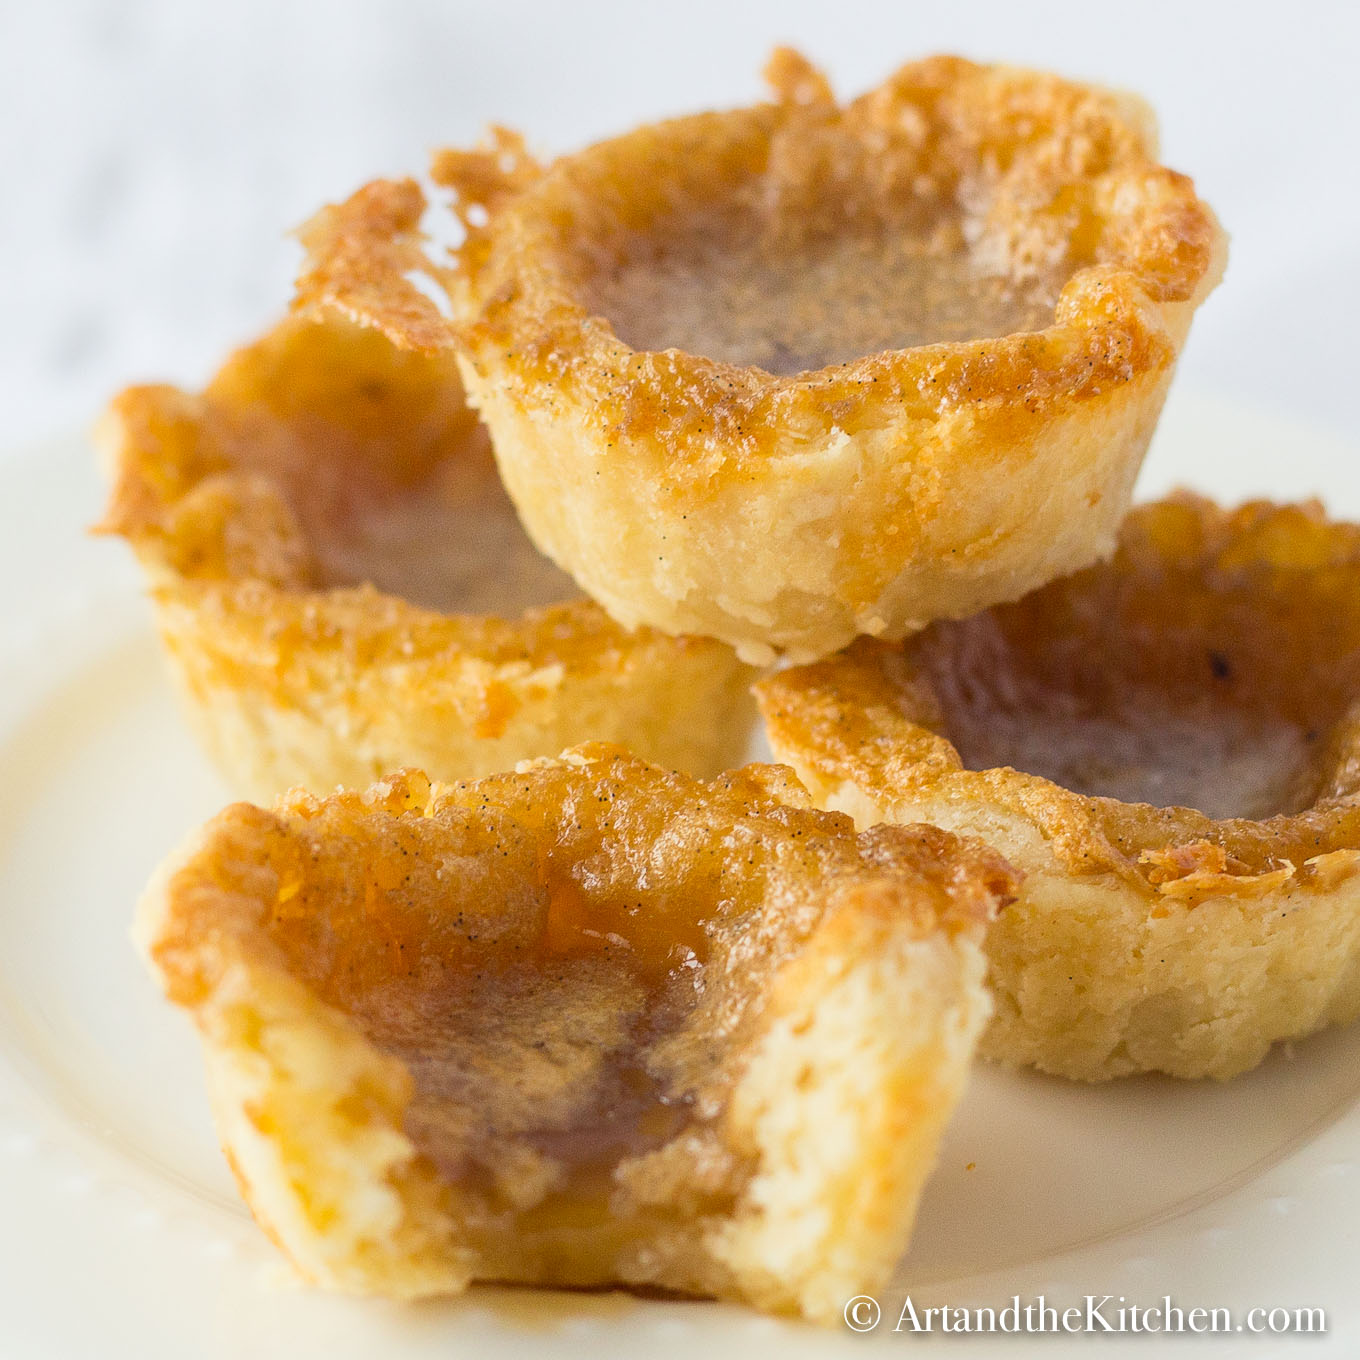 Stack of homemade butter tarts on white plate